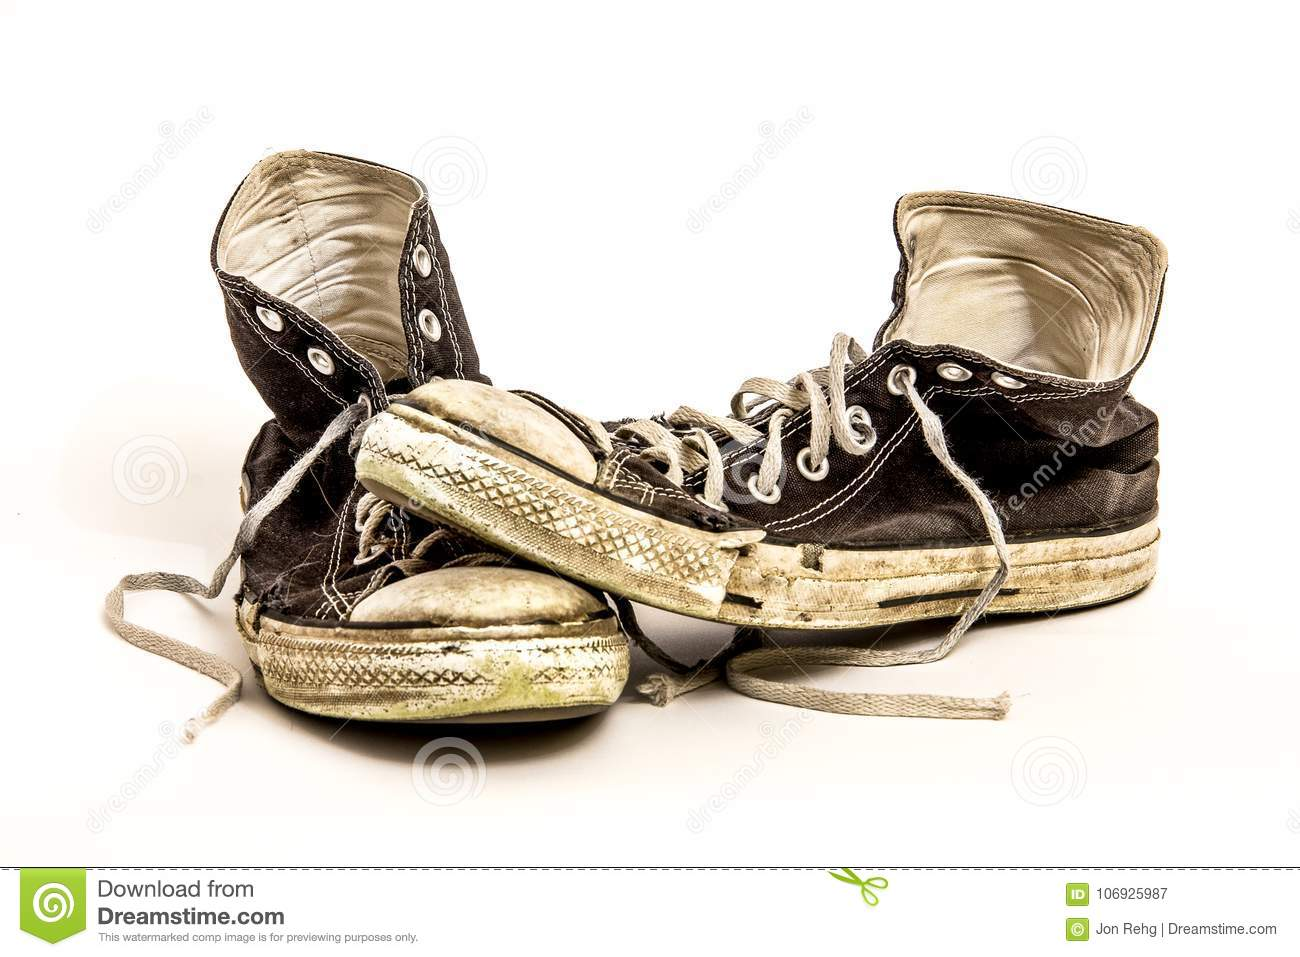 9e81e6834460 Pair of Men`s or Teenager`s Worn Out Dirty High Top Athletic Tennis Shoes  with Long Laces on White Background